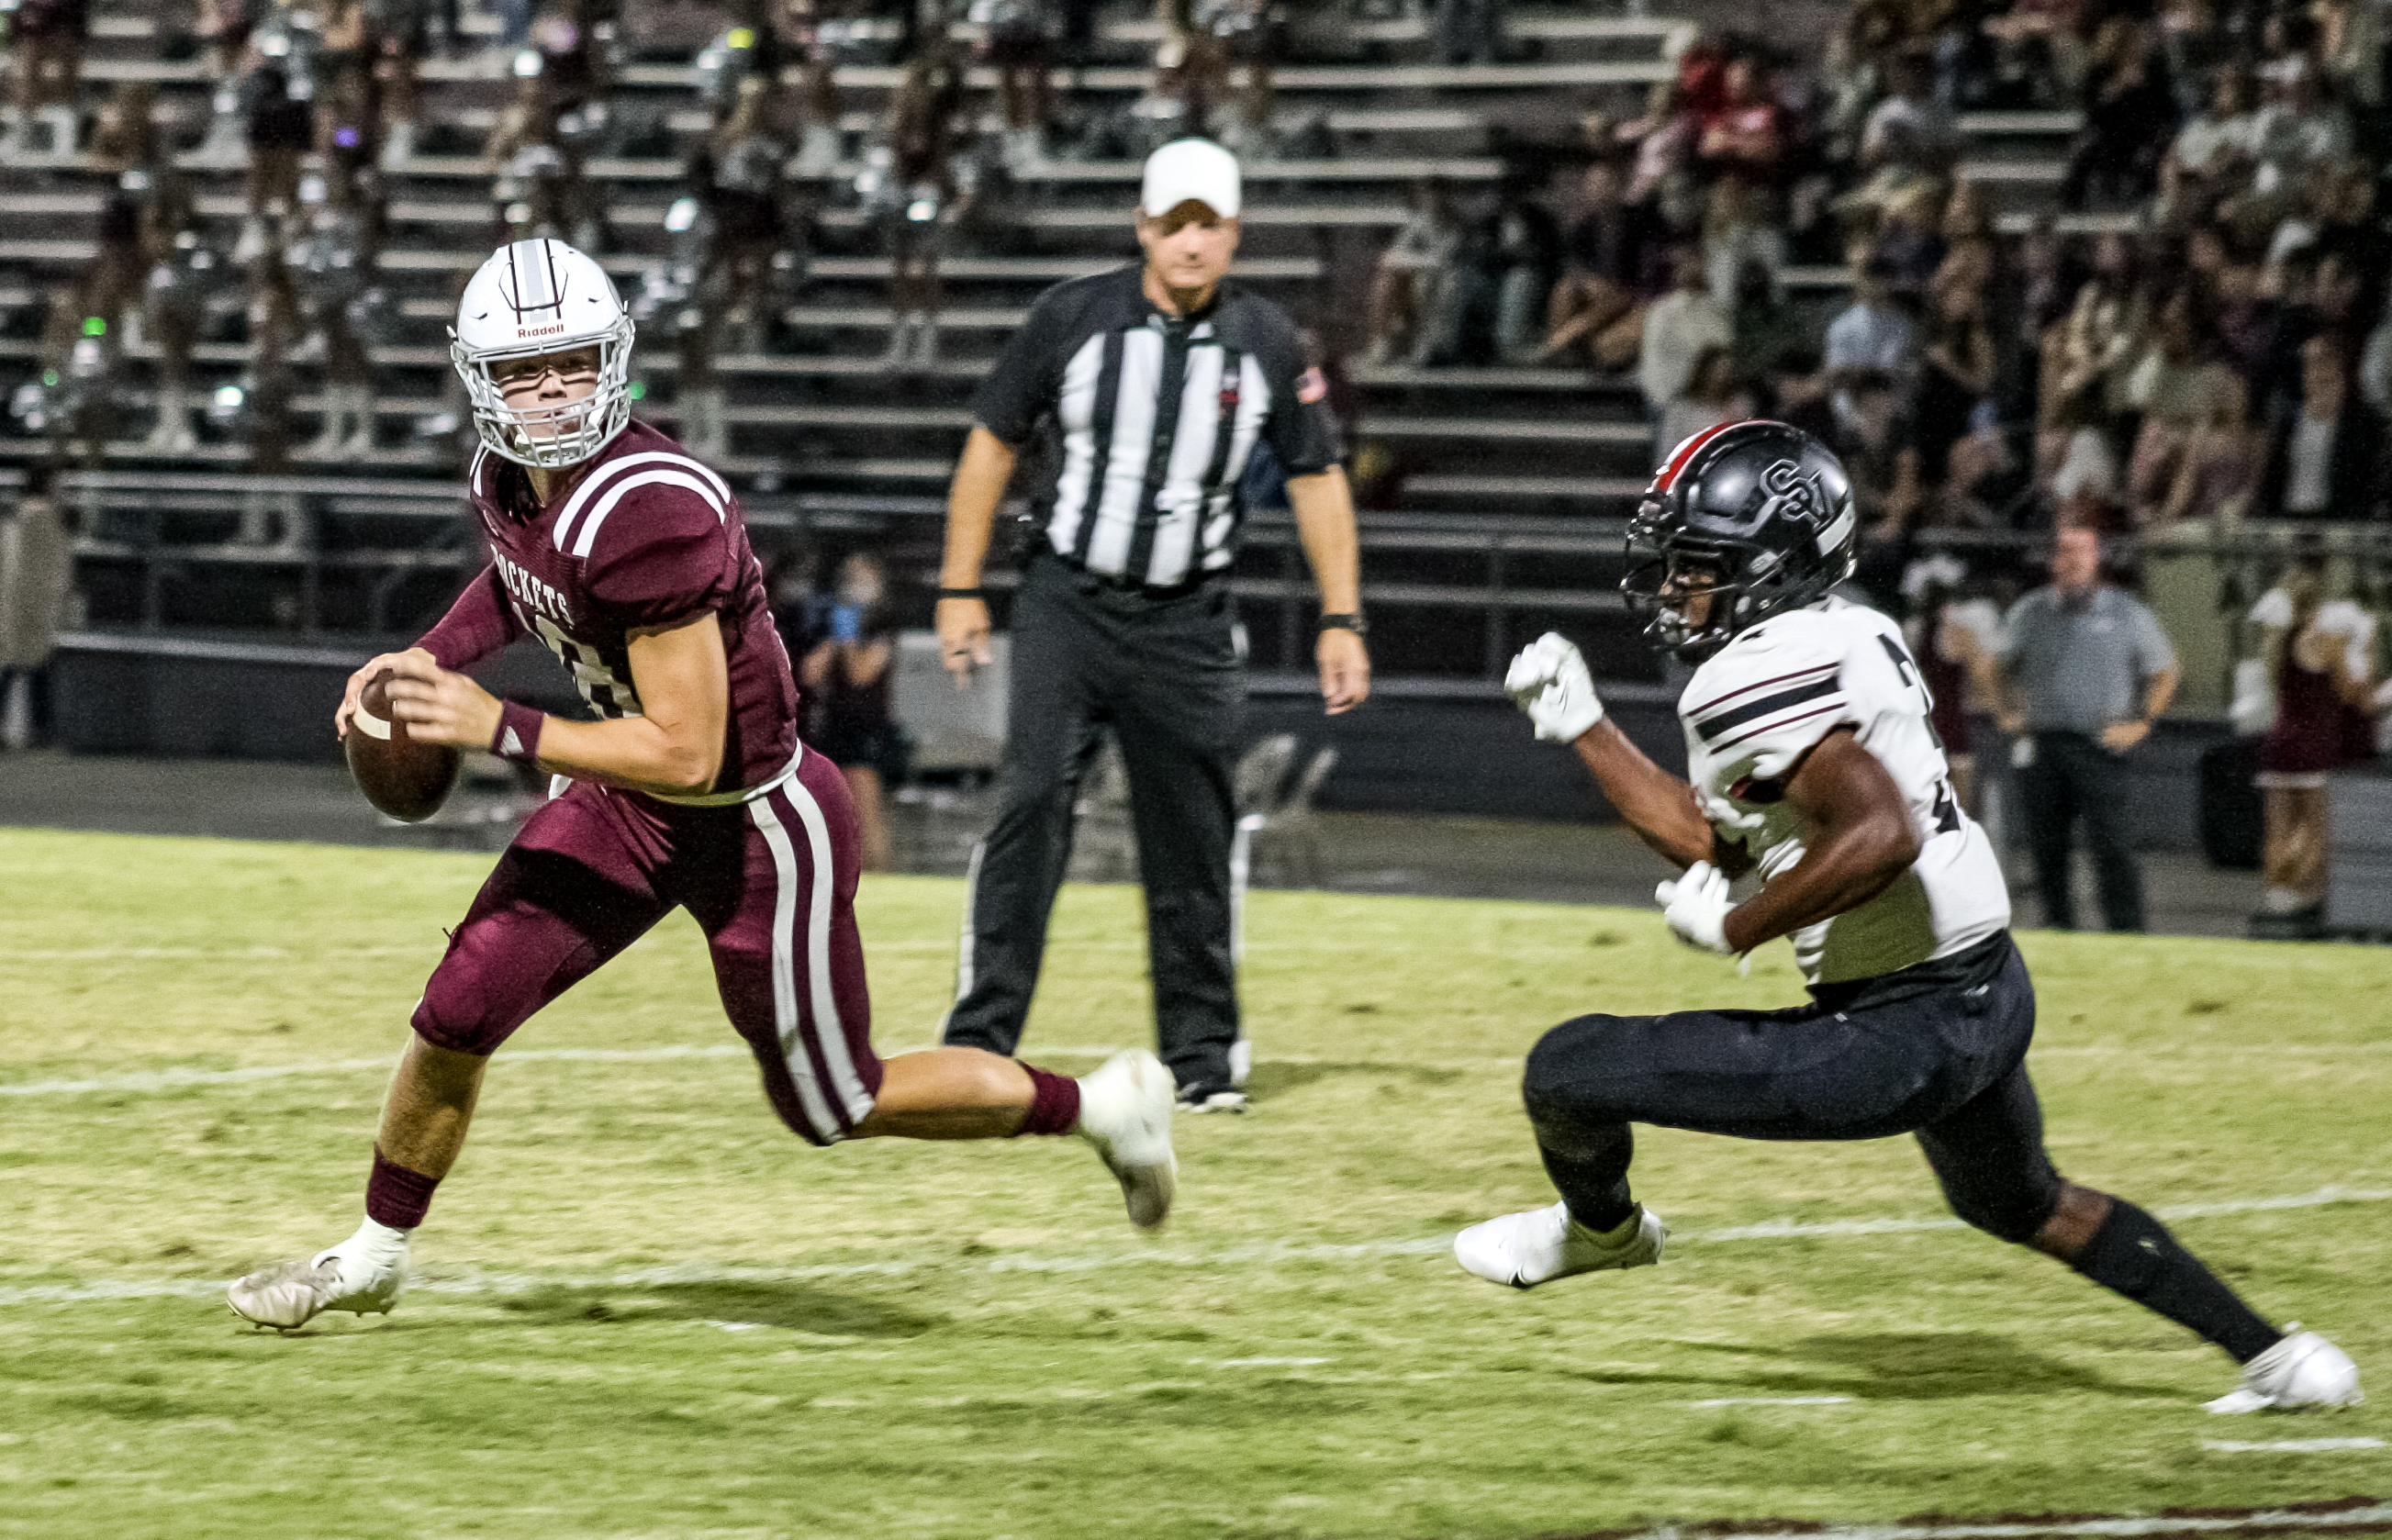 Gardendale takes down Shades Valley 41-26